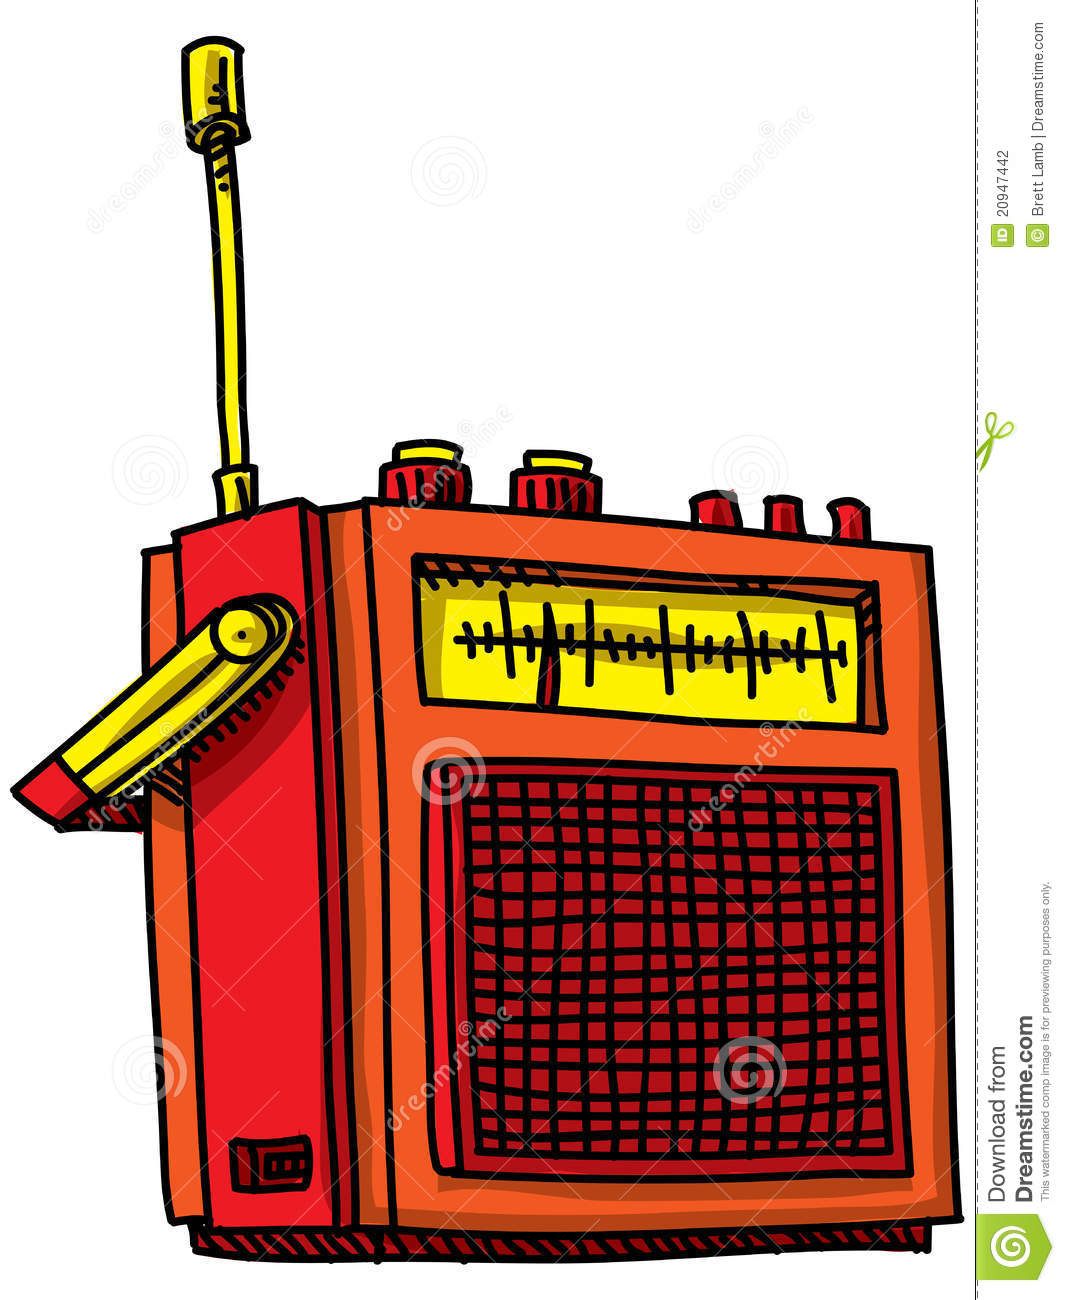 Stock Photography Retro Cartoon Radio Image20947442 moreover Going Back To Real Racing Roots Ridge Racer Type 4 Review as well Um Flint Hosts The Christopher Paul Curtis Writing Adventure together with Secret Decoder Ring as well World Behind Me Powerpoint Background. on old fashioned radio